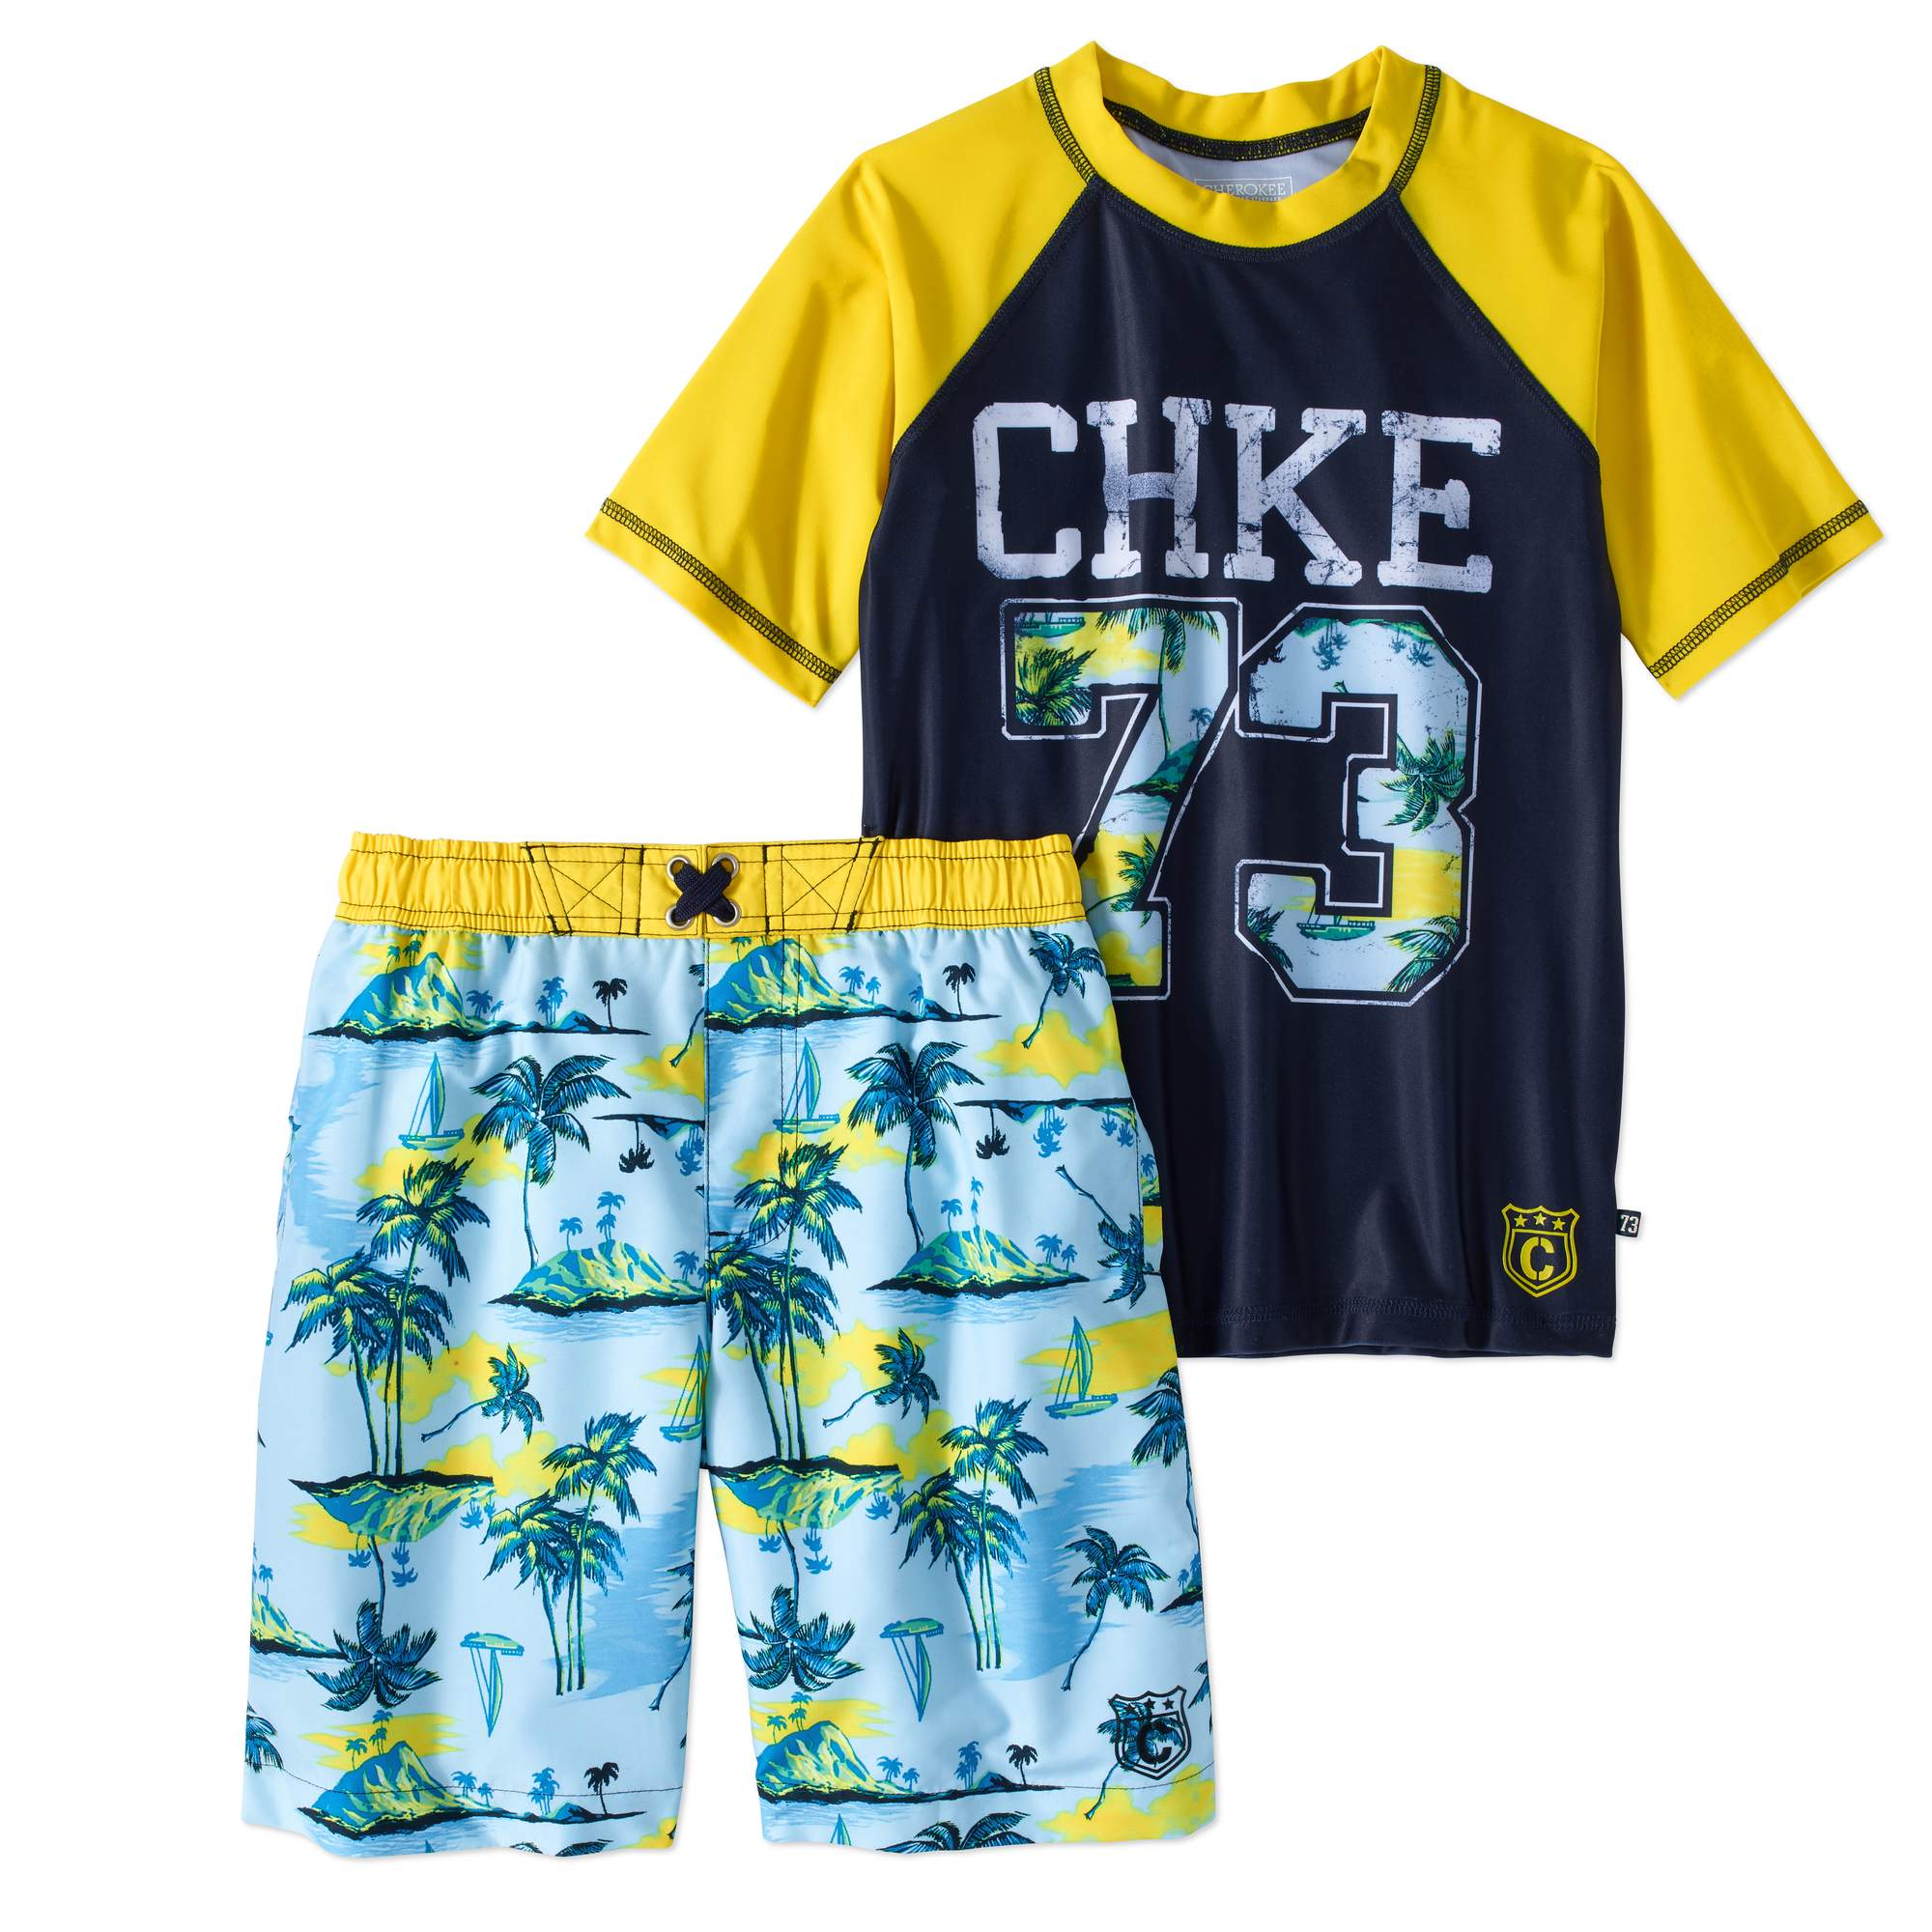 Boys' Graphic Rashguard And Swim Trunk 2 Piece Set